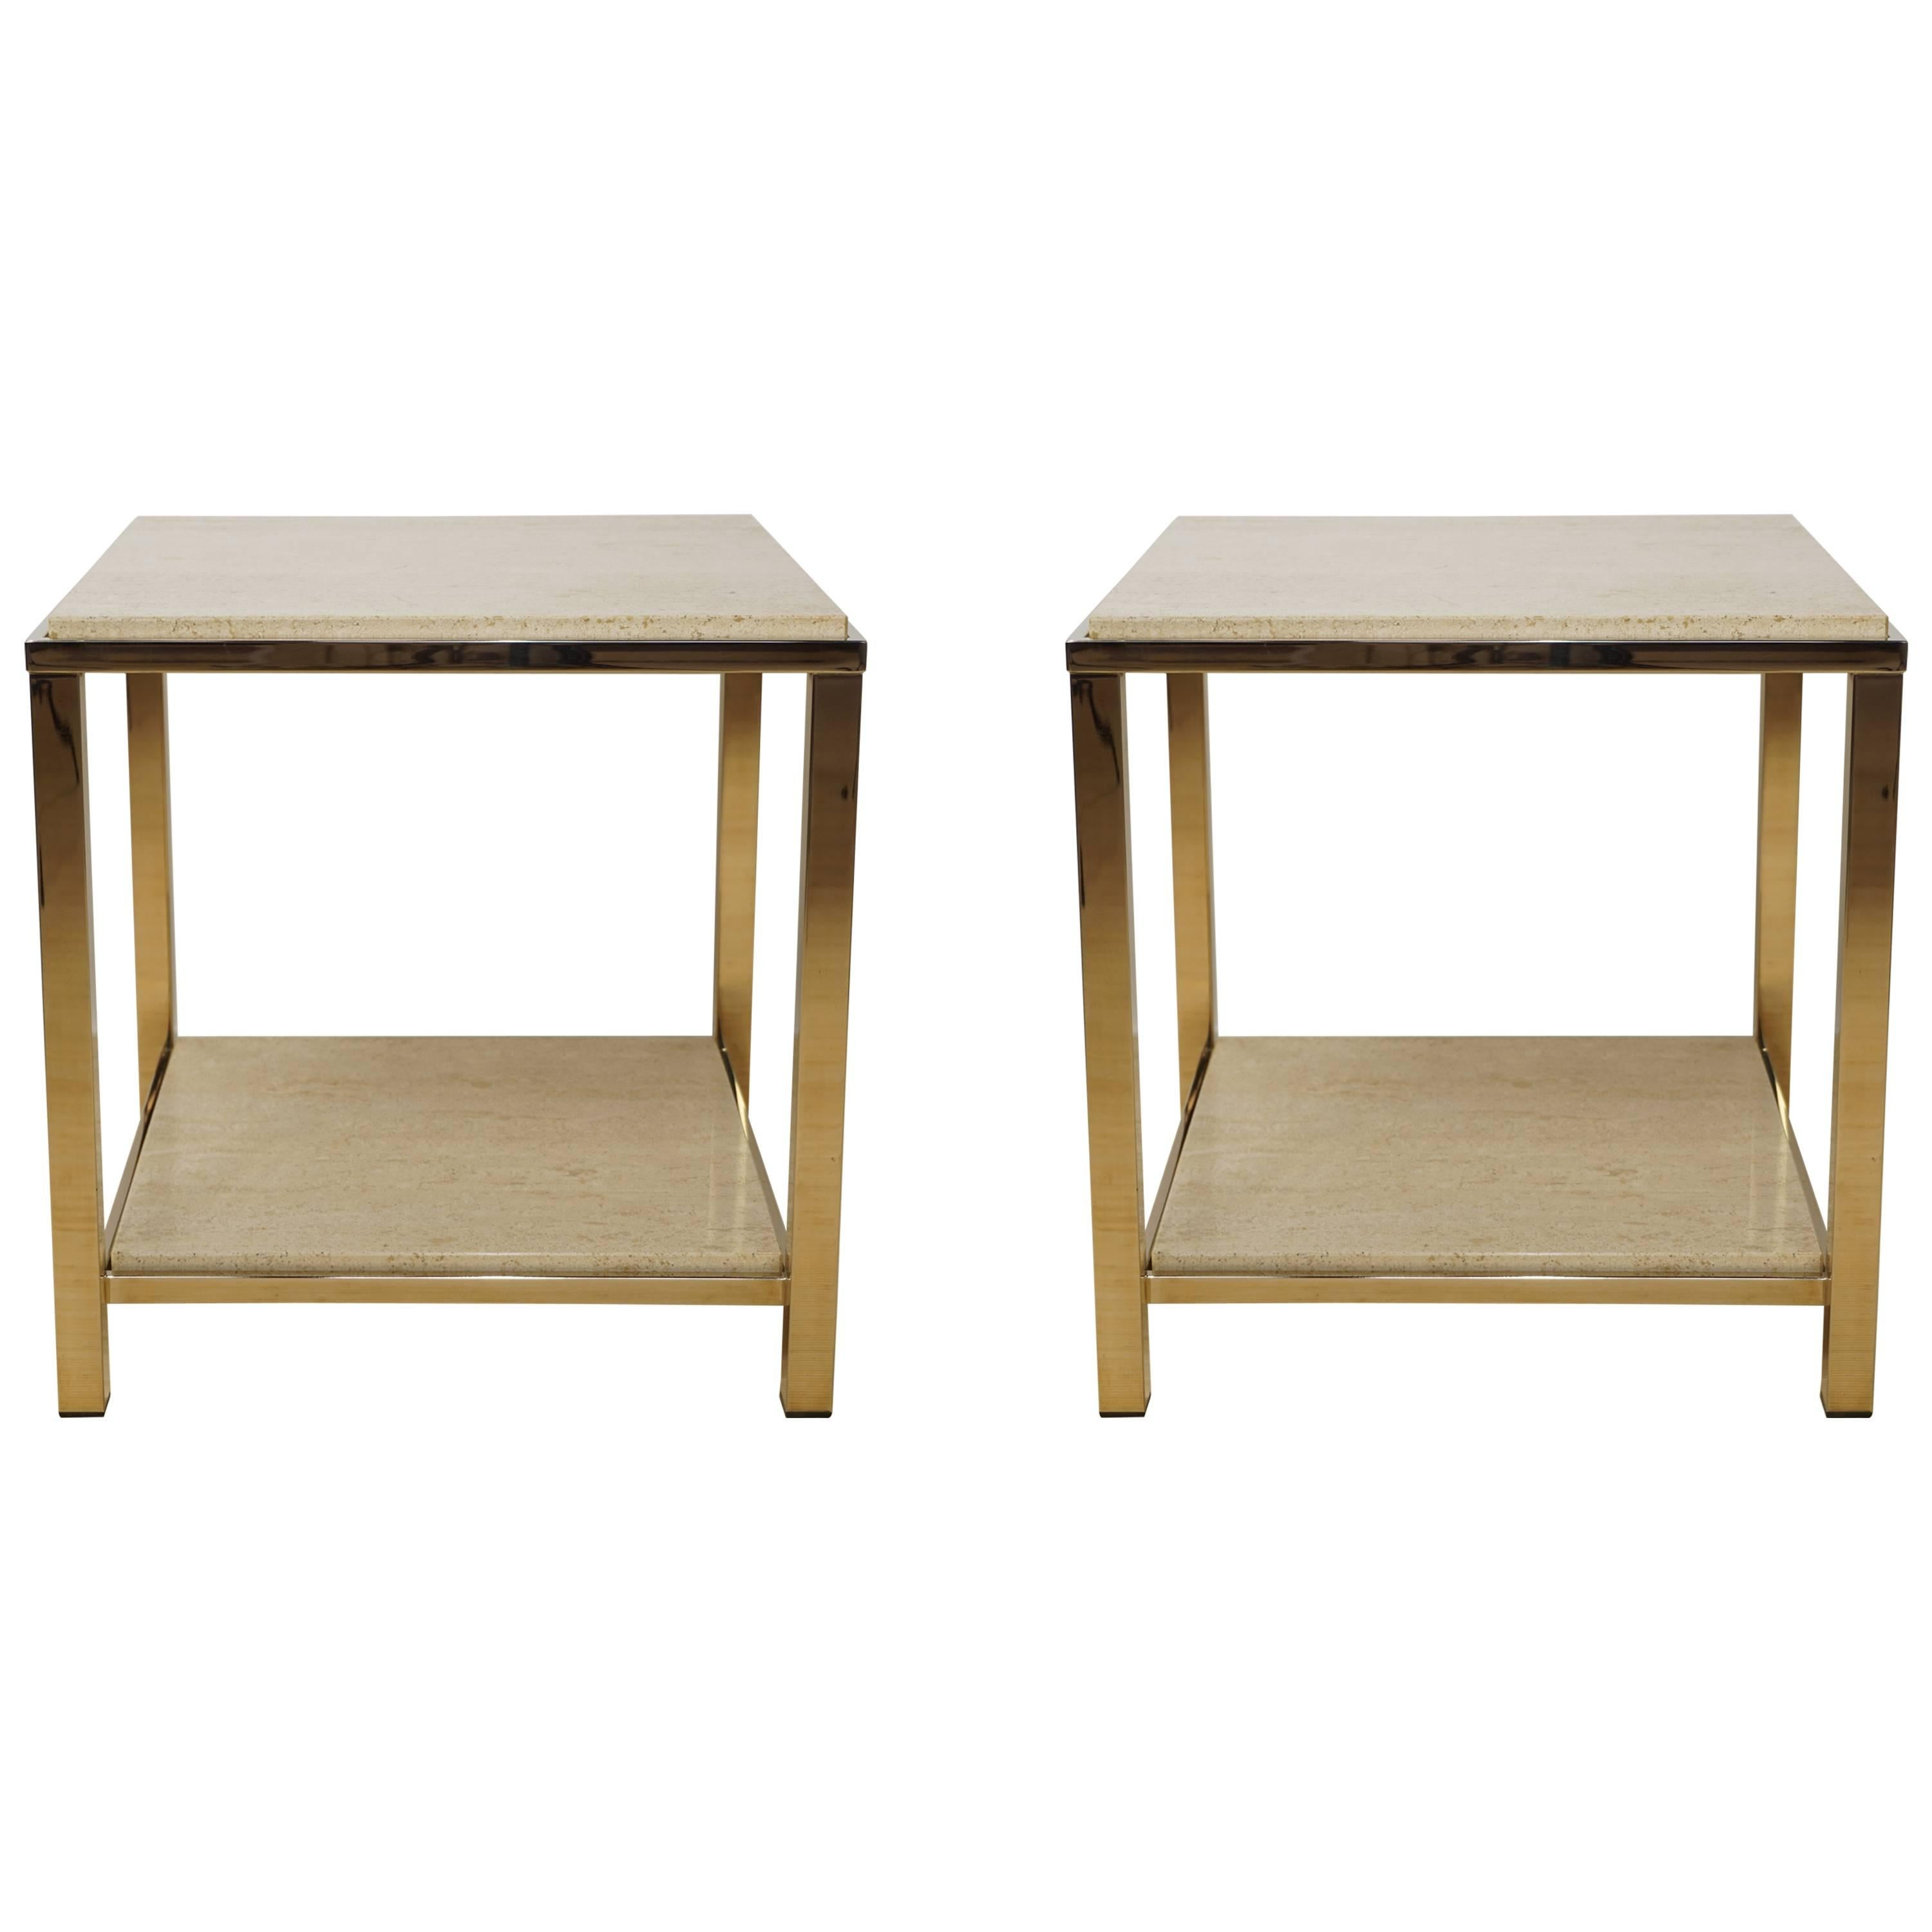 Pair of Gold-Plated Side Table with Travertine Shelf, 23-Carat by Belgo Chrome